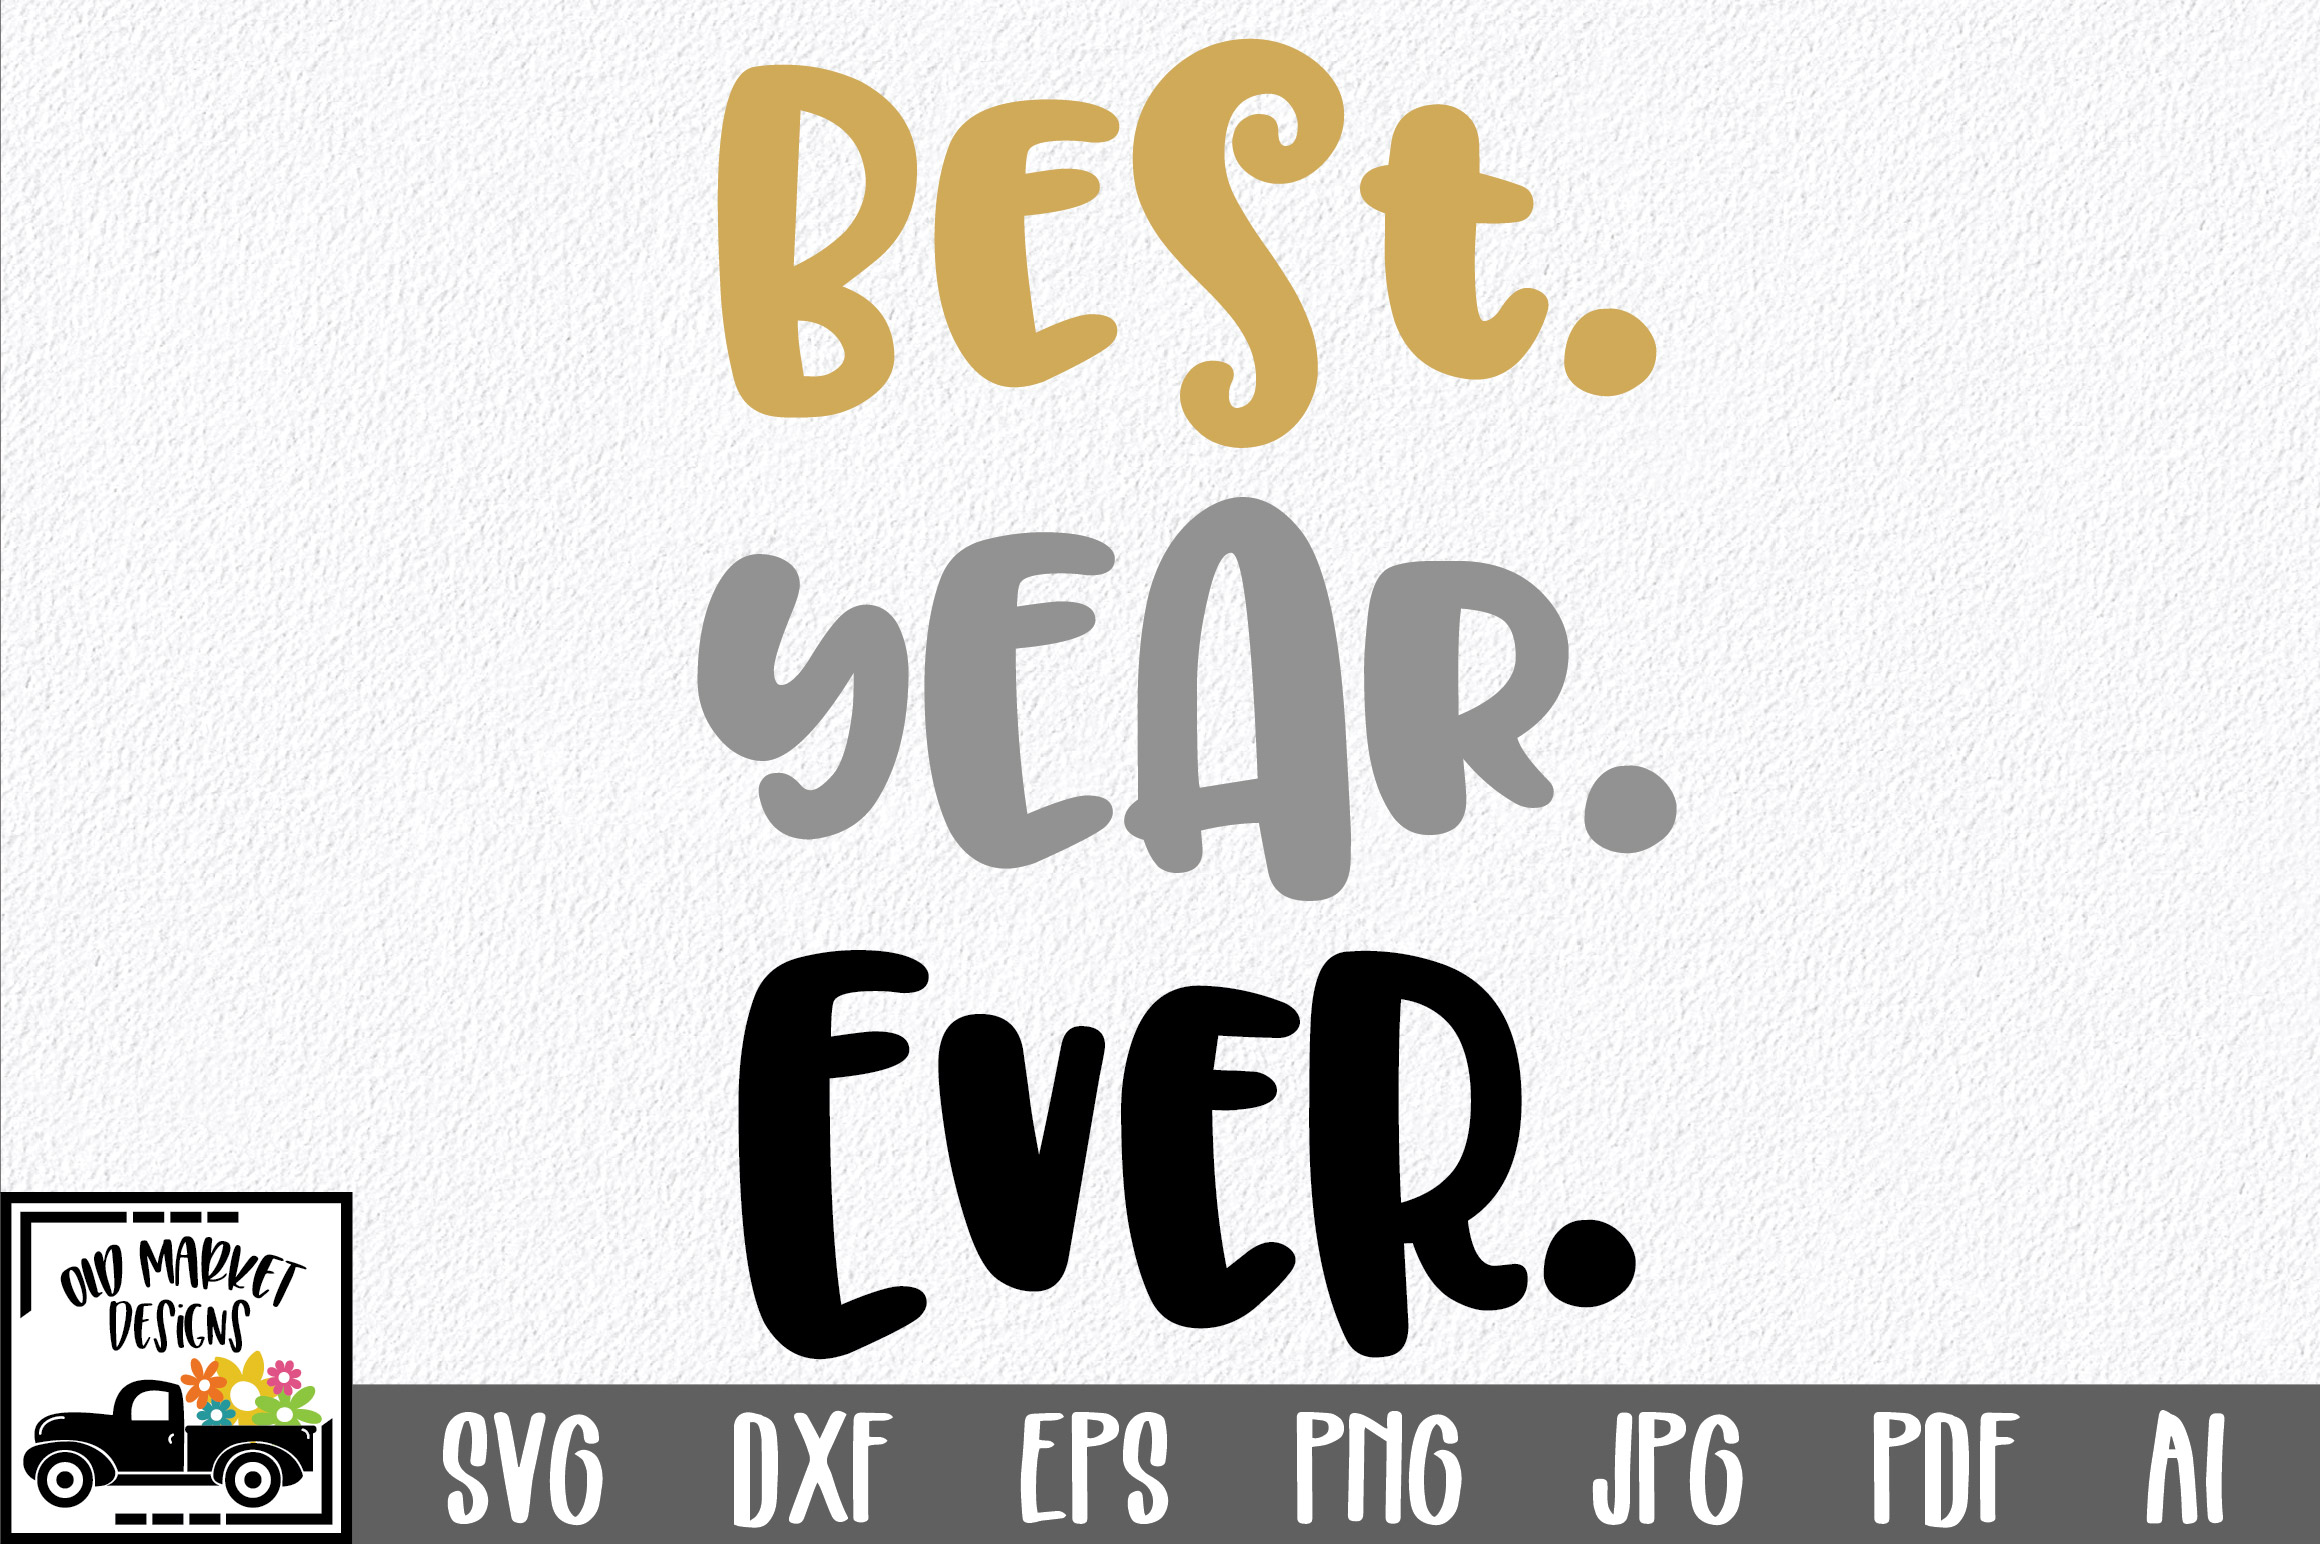 Download Free Best Year Ever Svg Graphic By Oldmarketdesigns Creative Fabrica for Cricut Explore, Silhouette and other cutting machines.